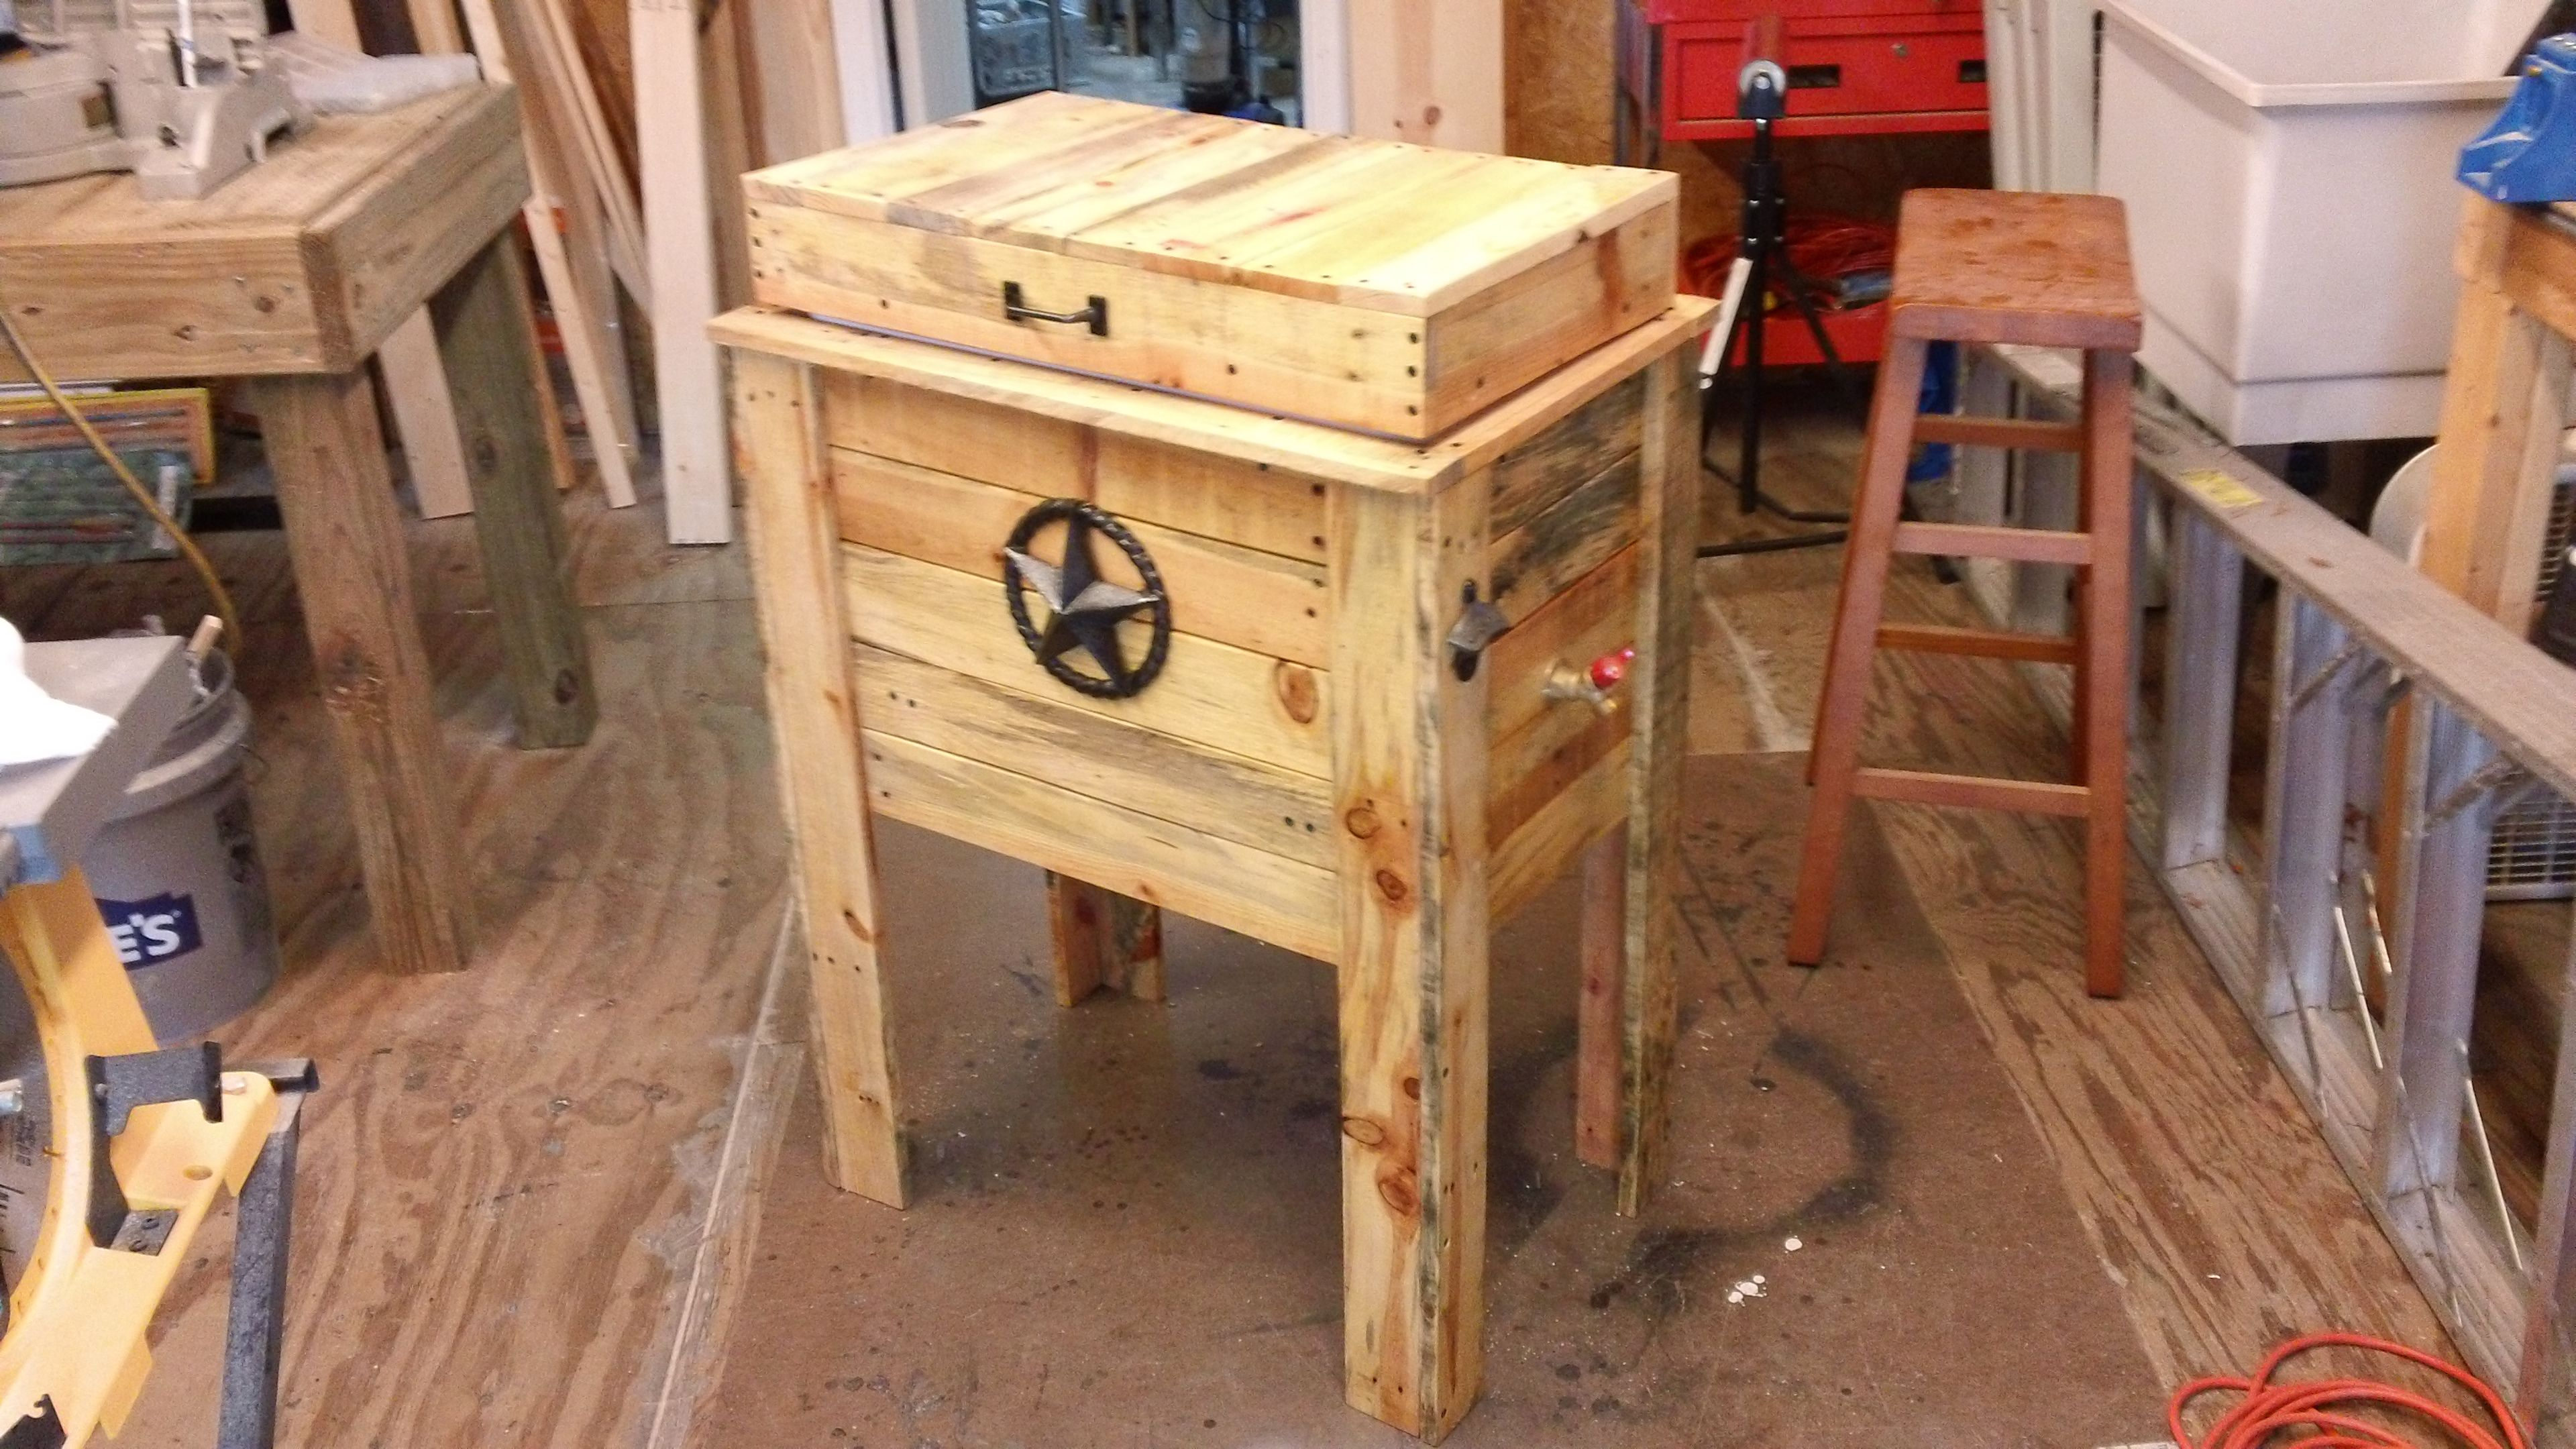 Cowboy cooler made from pallet wood It was so easy to make from a